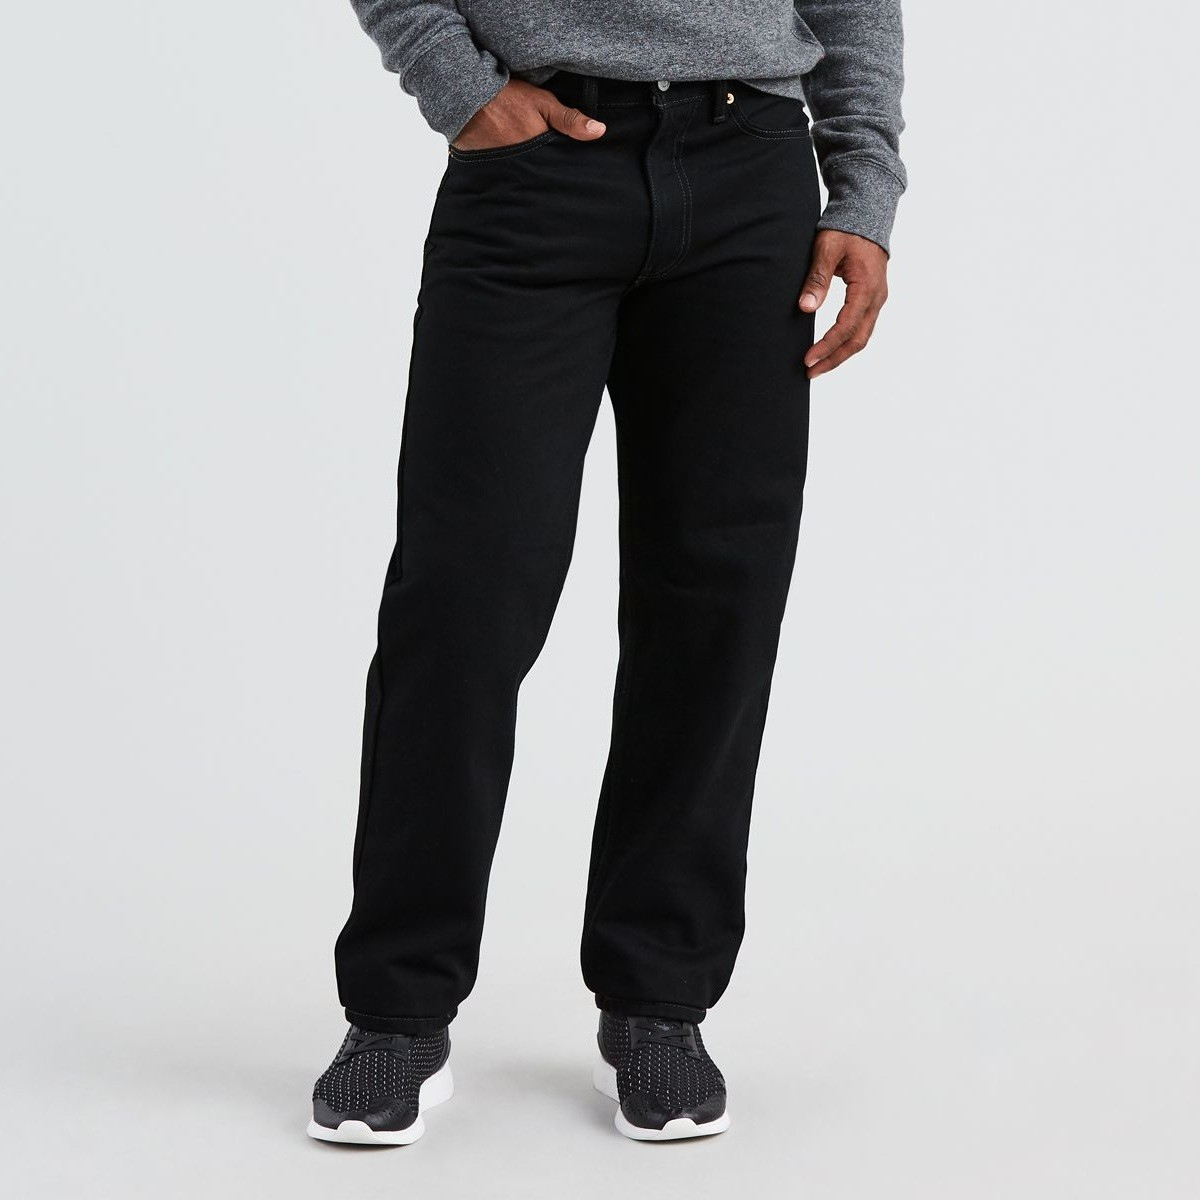 550 Relaxed Fit Jeans 00550-0260 1